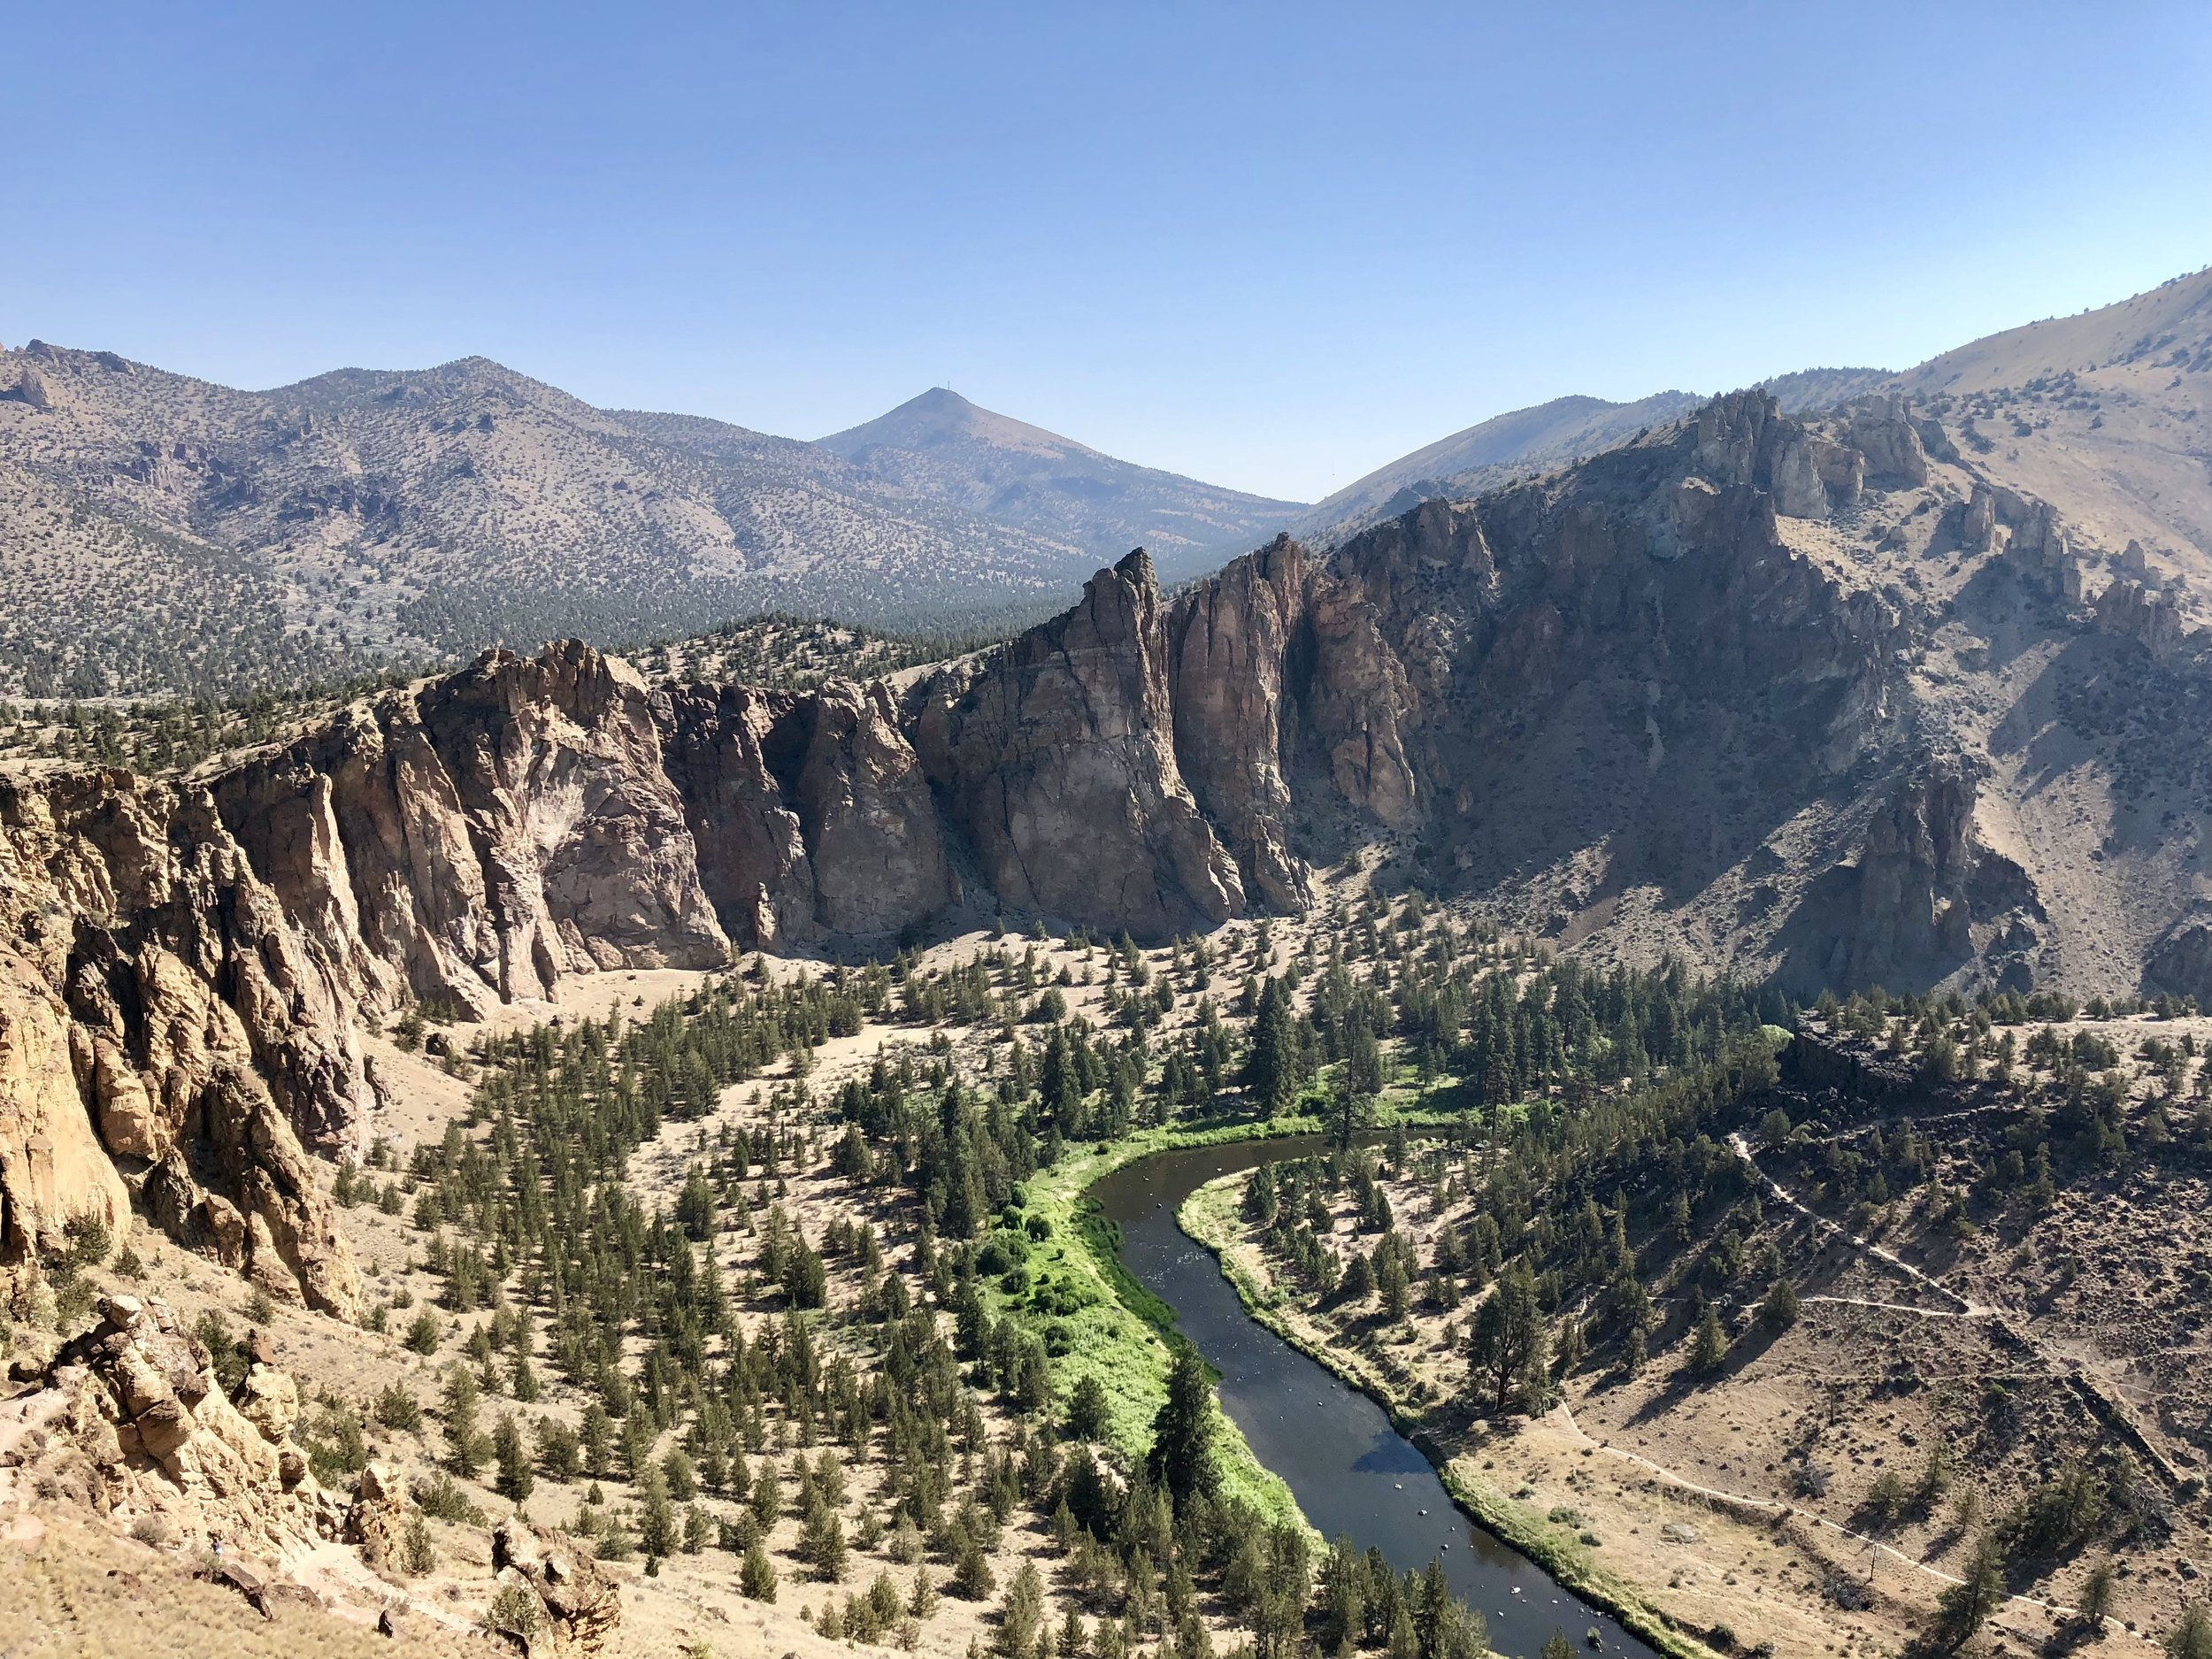 Smith Rock State Park! This was my second visit here - the first was Fall Break of sophomore year. This photo was taken from the top of Misery Ridge. The hike was hard but not miserable. Also, shoutout to Smith Rock for having showers! My shower after this hike was my first in five days.